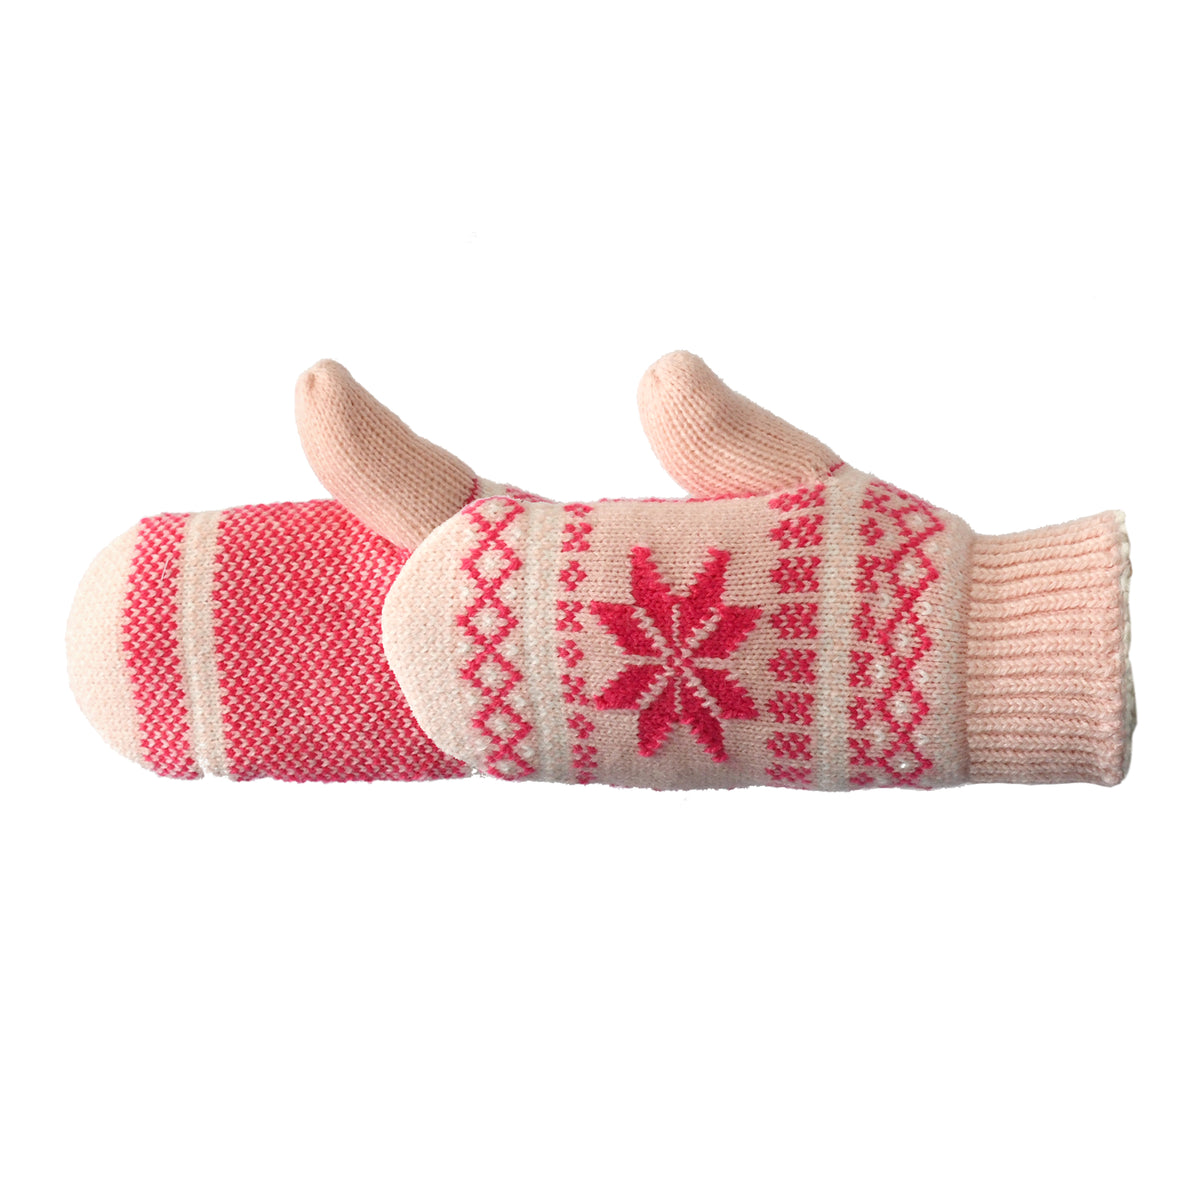 Kid's Powder Mitten